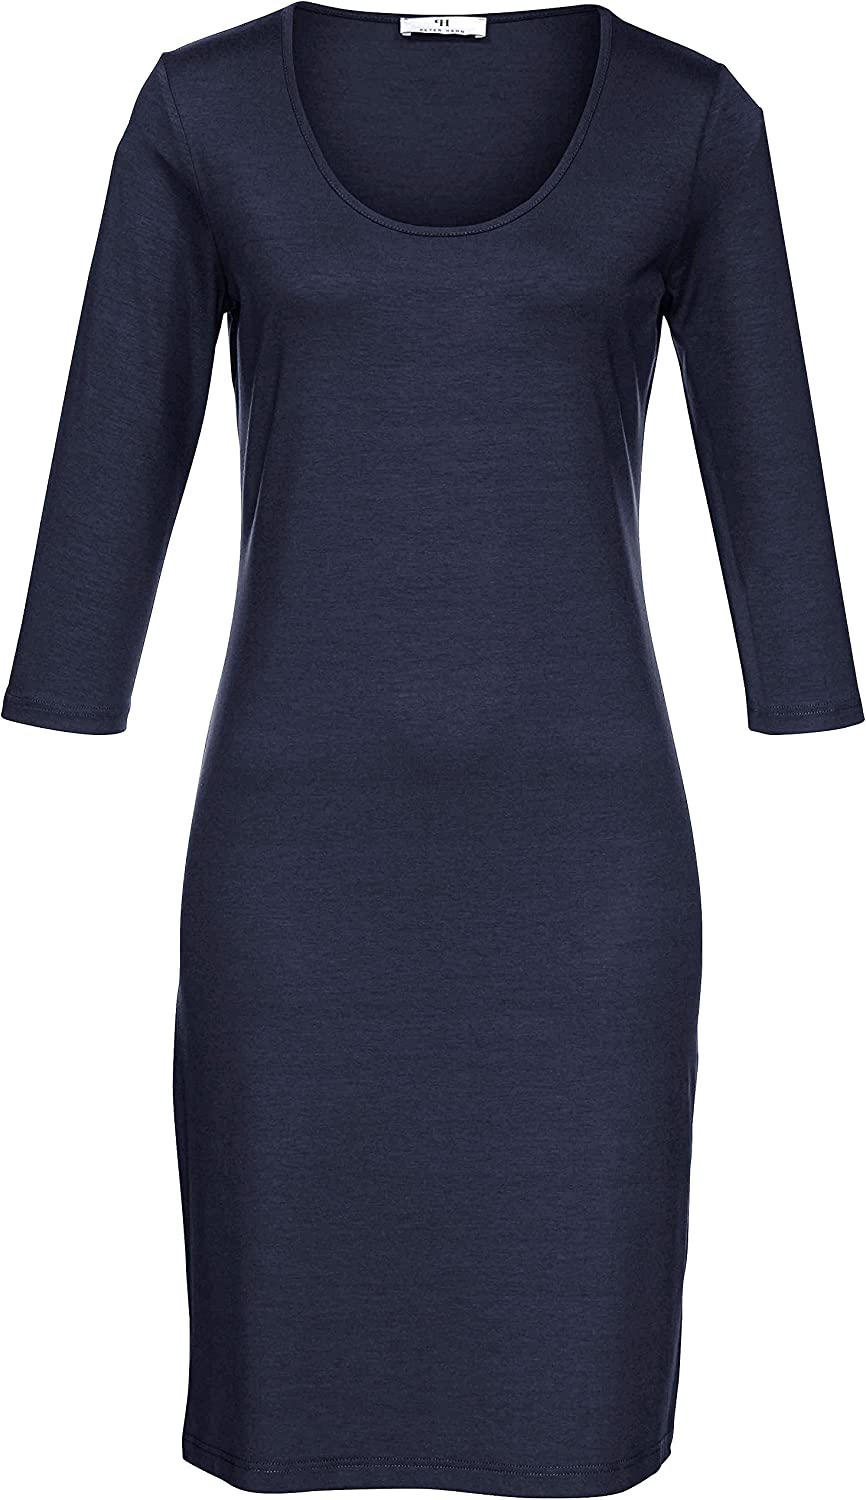 Peter Hahn Damen - Jersey-Kleid, blau, Damen-Cocktailkleid